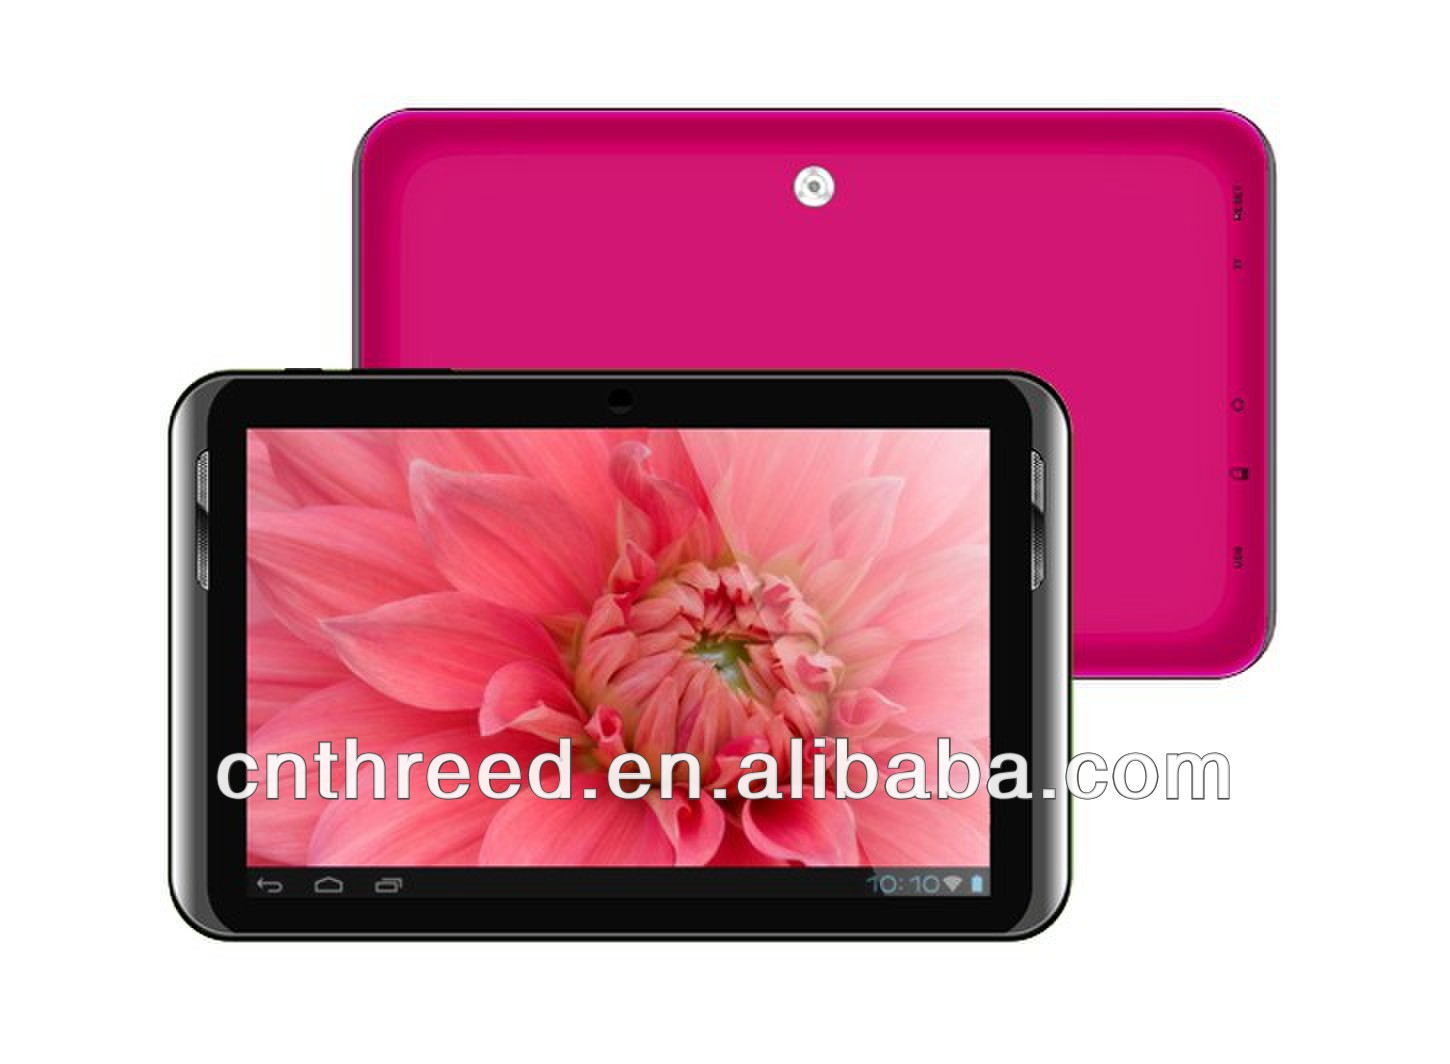 tablette phablet 9inch tablet pc 3g sim card slot phone call bluetooth gps mtk6572 dual core android4.2